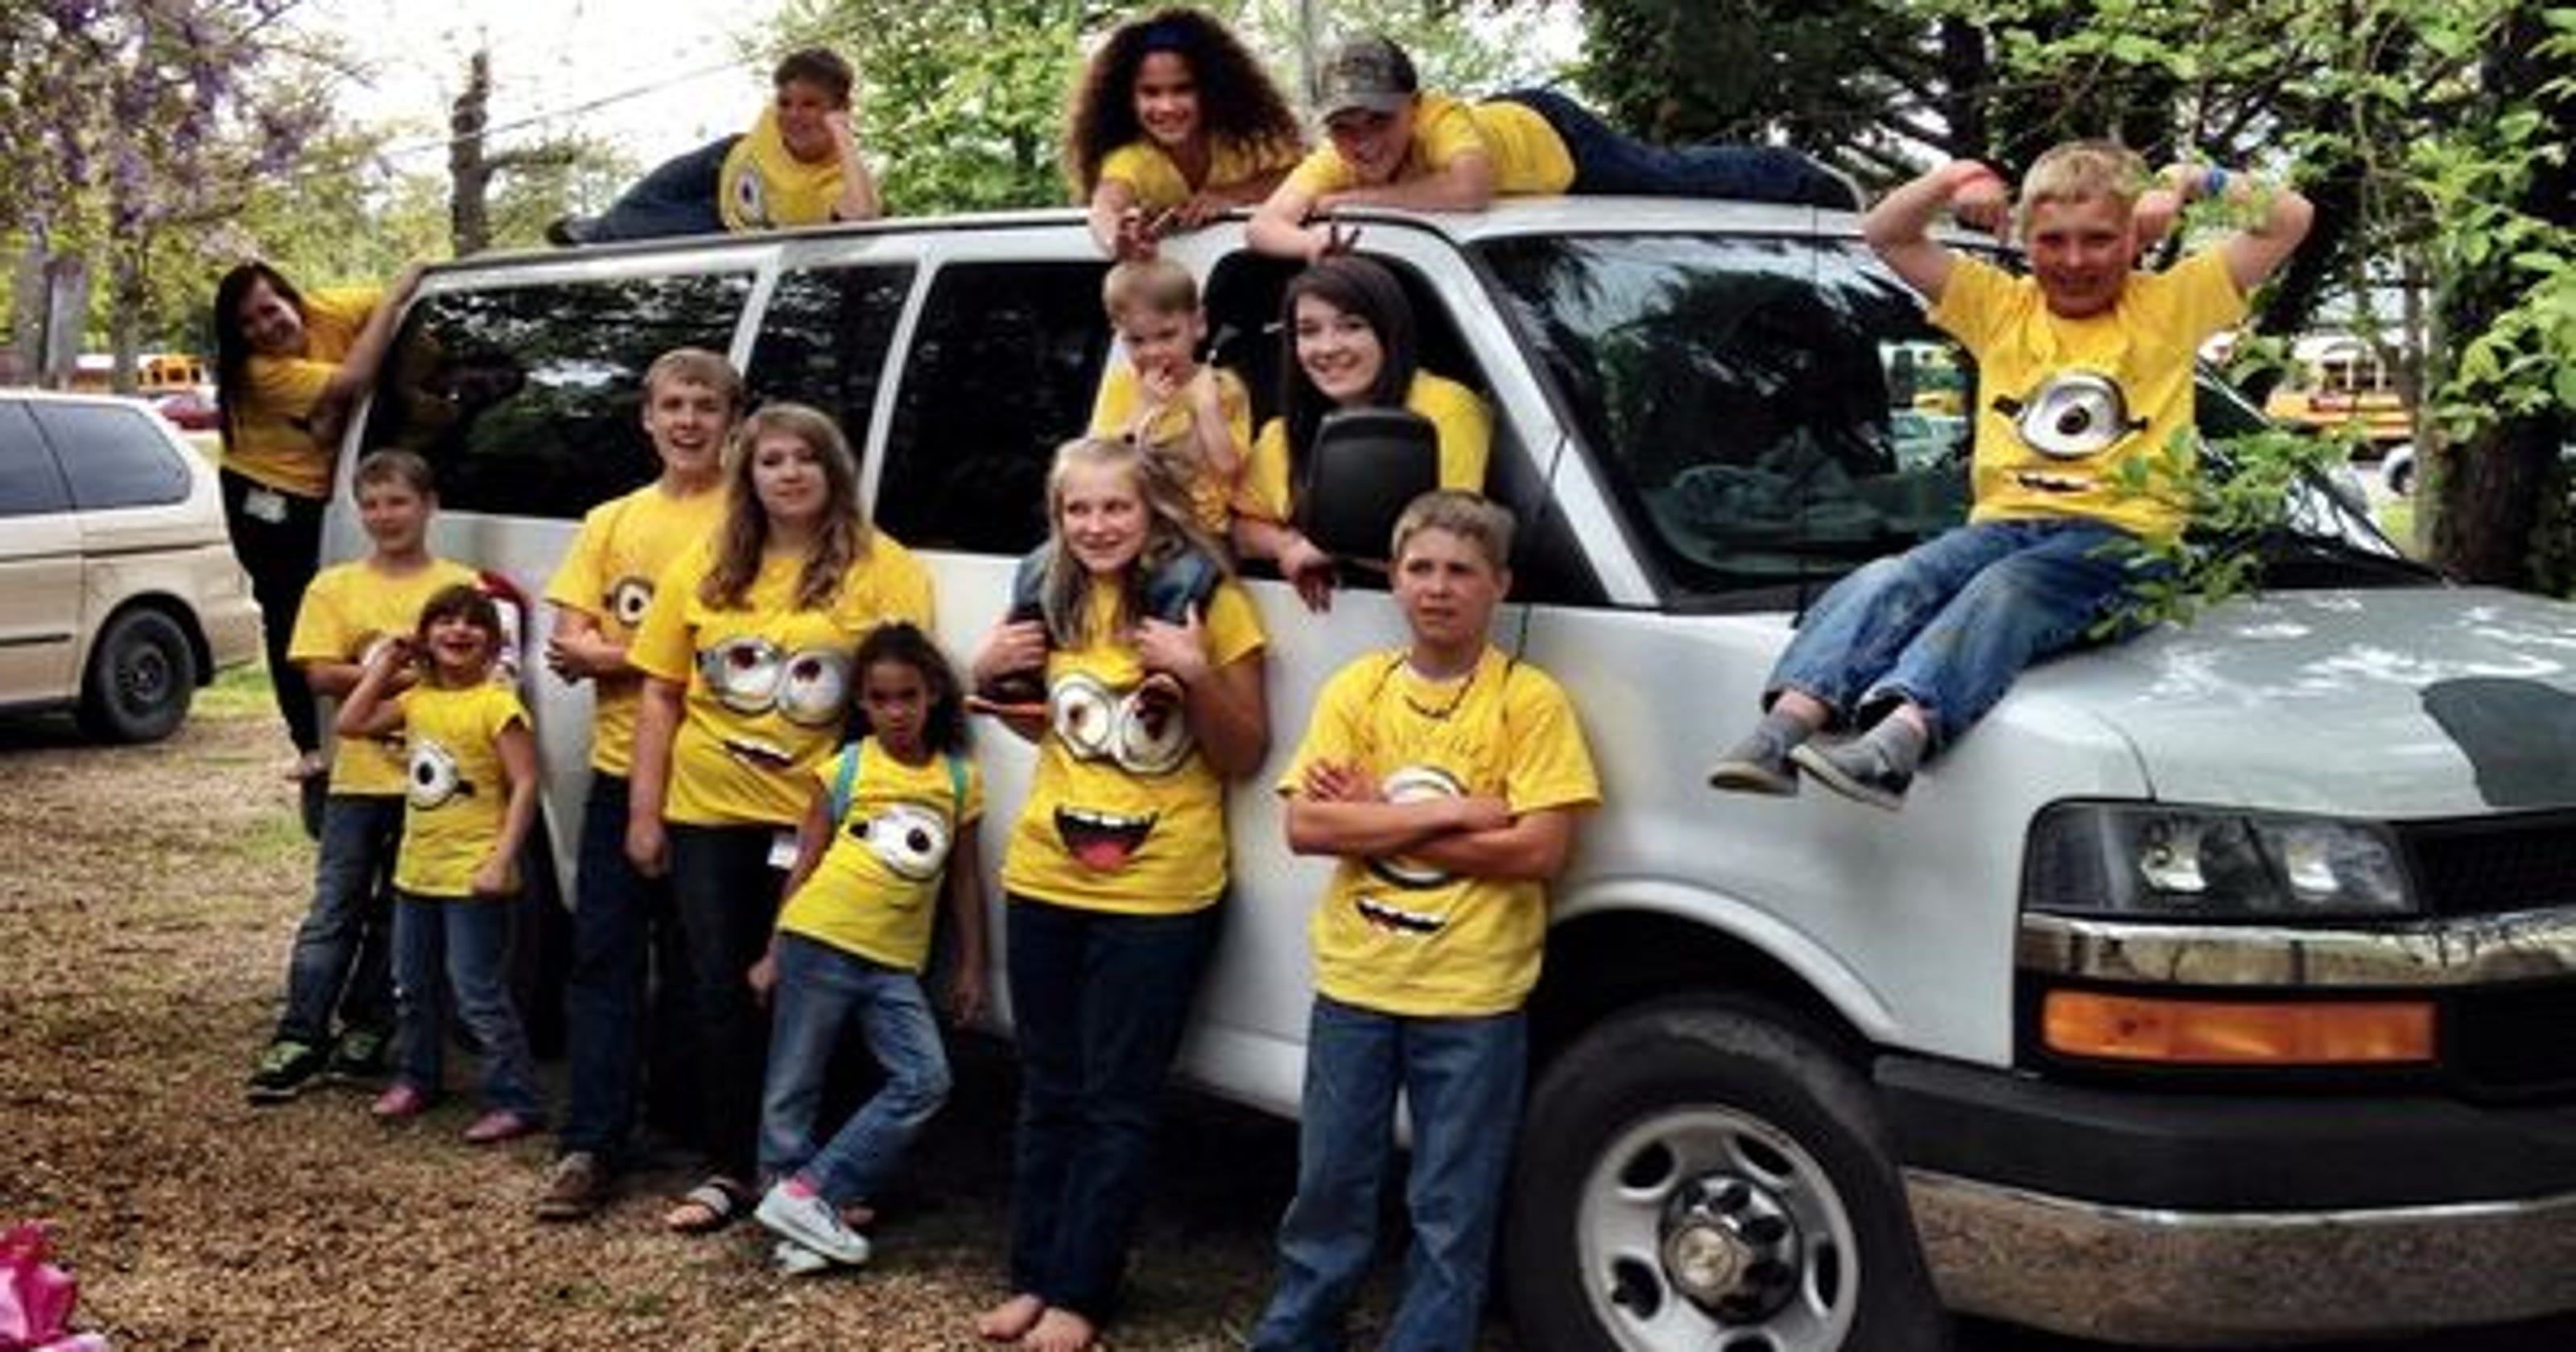 14 kids: Siblings adopted together in big, happy family